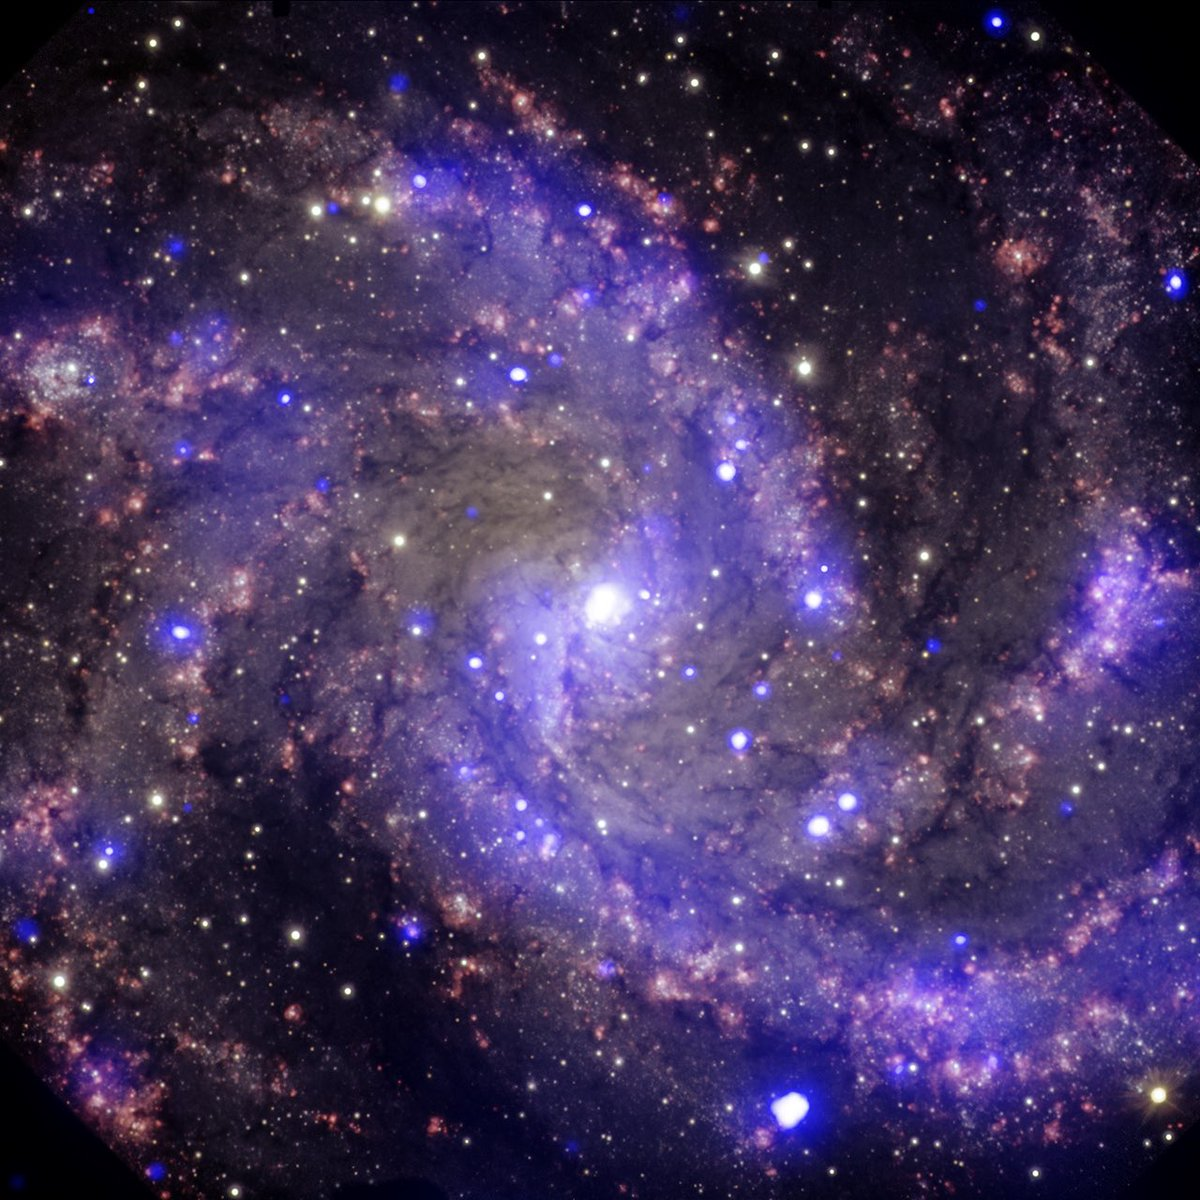 At least 10 supernova explosions have occurred in NGC 6946 since the early 20th century, earning it the nickname the #Fireworks Galaxy. Located about 22 million light years from Earth, this spectacular spiral galaxy is roughly 40,000 light years across. #4thOfJuly #4thofJuly2020